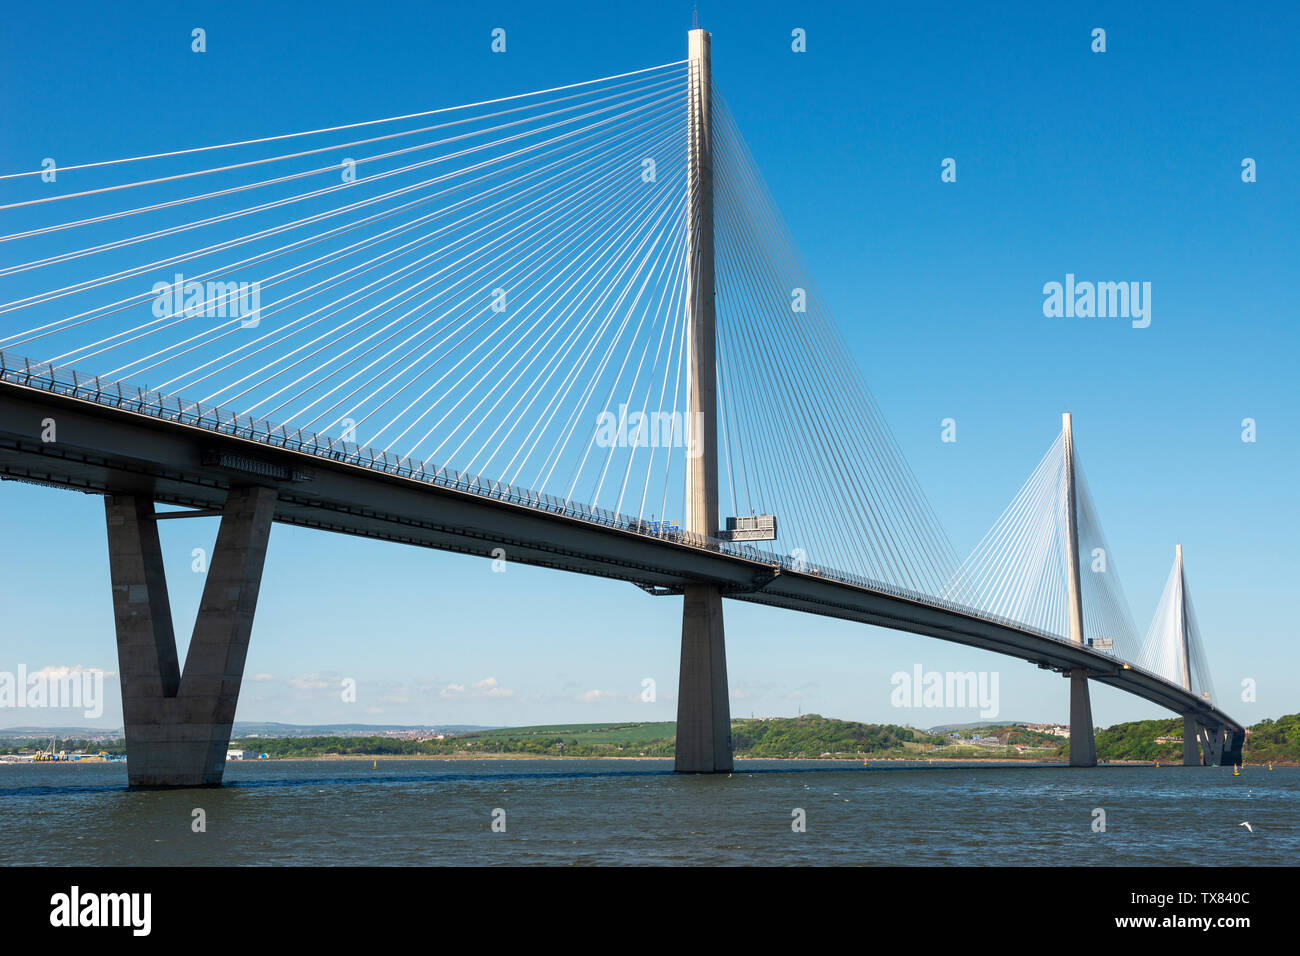 New Queensferry Crossing road bridge spanning River Forth viewed from Port Edgar, Queensferry, Scotland, UK Stock Photo